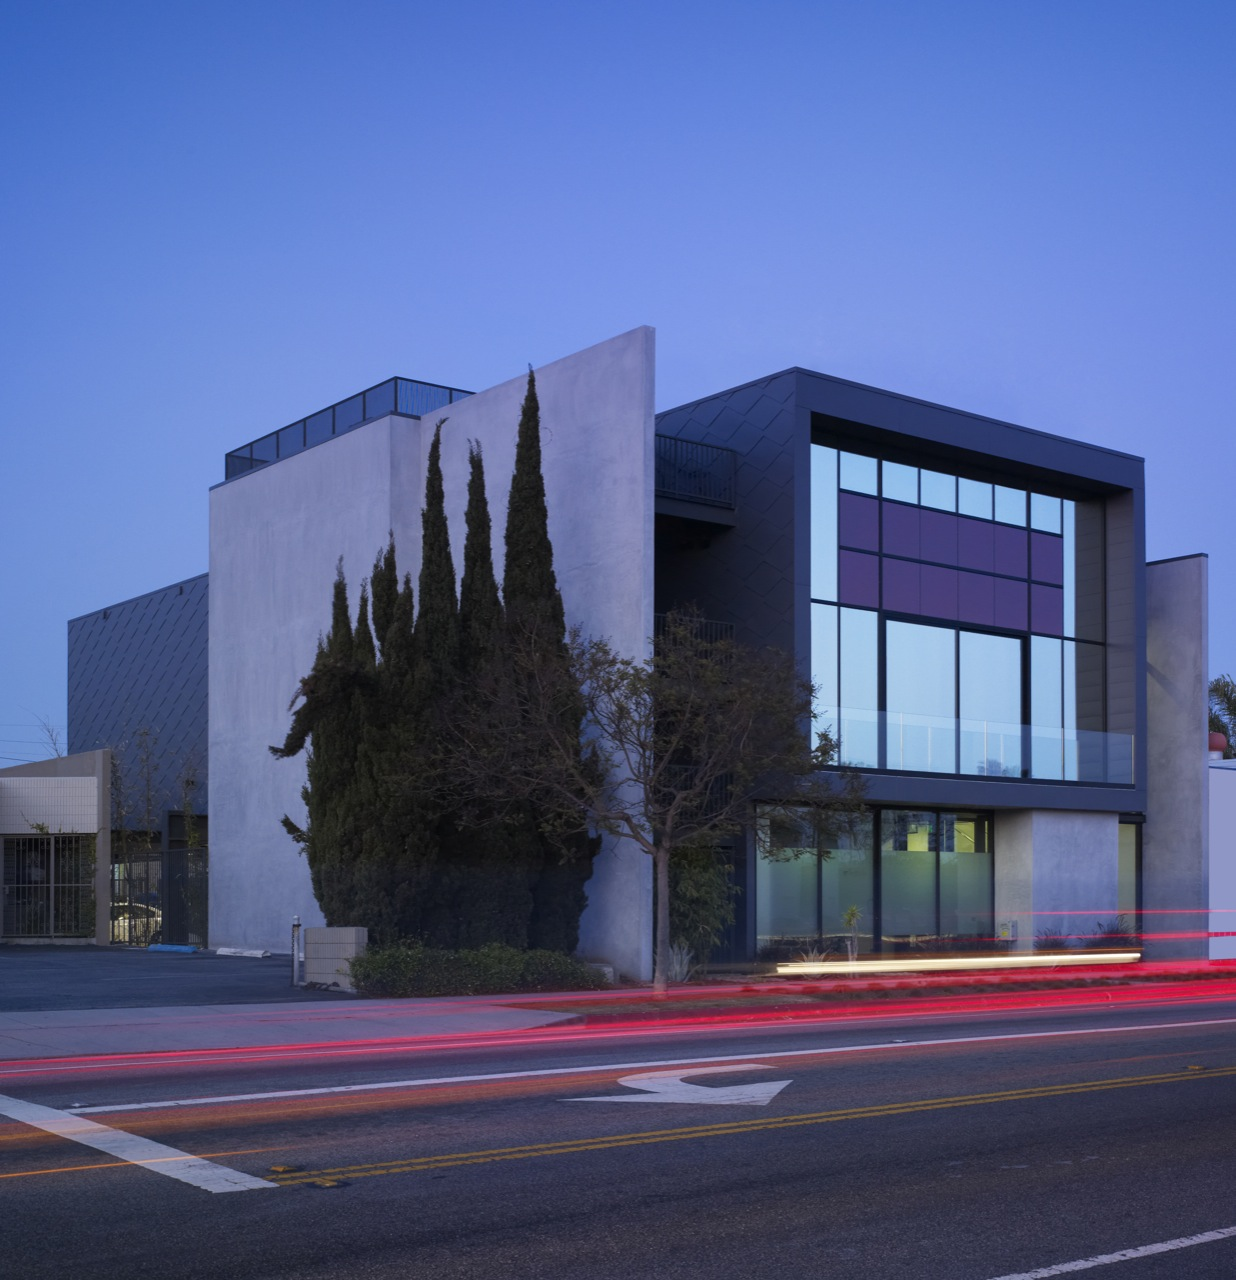 20th st offices by belzberg architects karmatrendz for Modern office building design concepts exterior